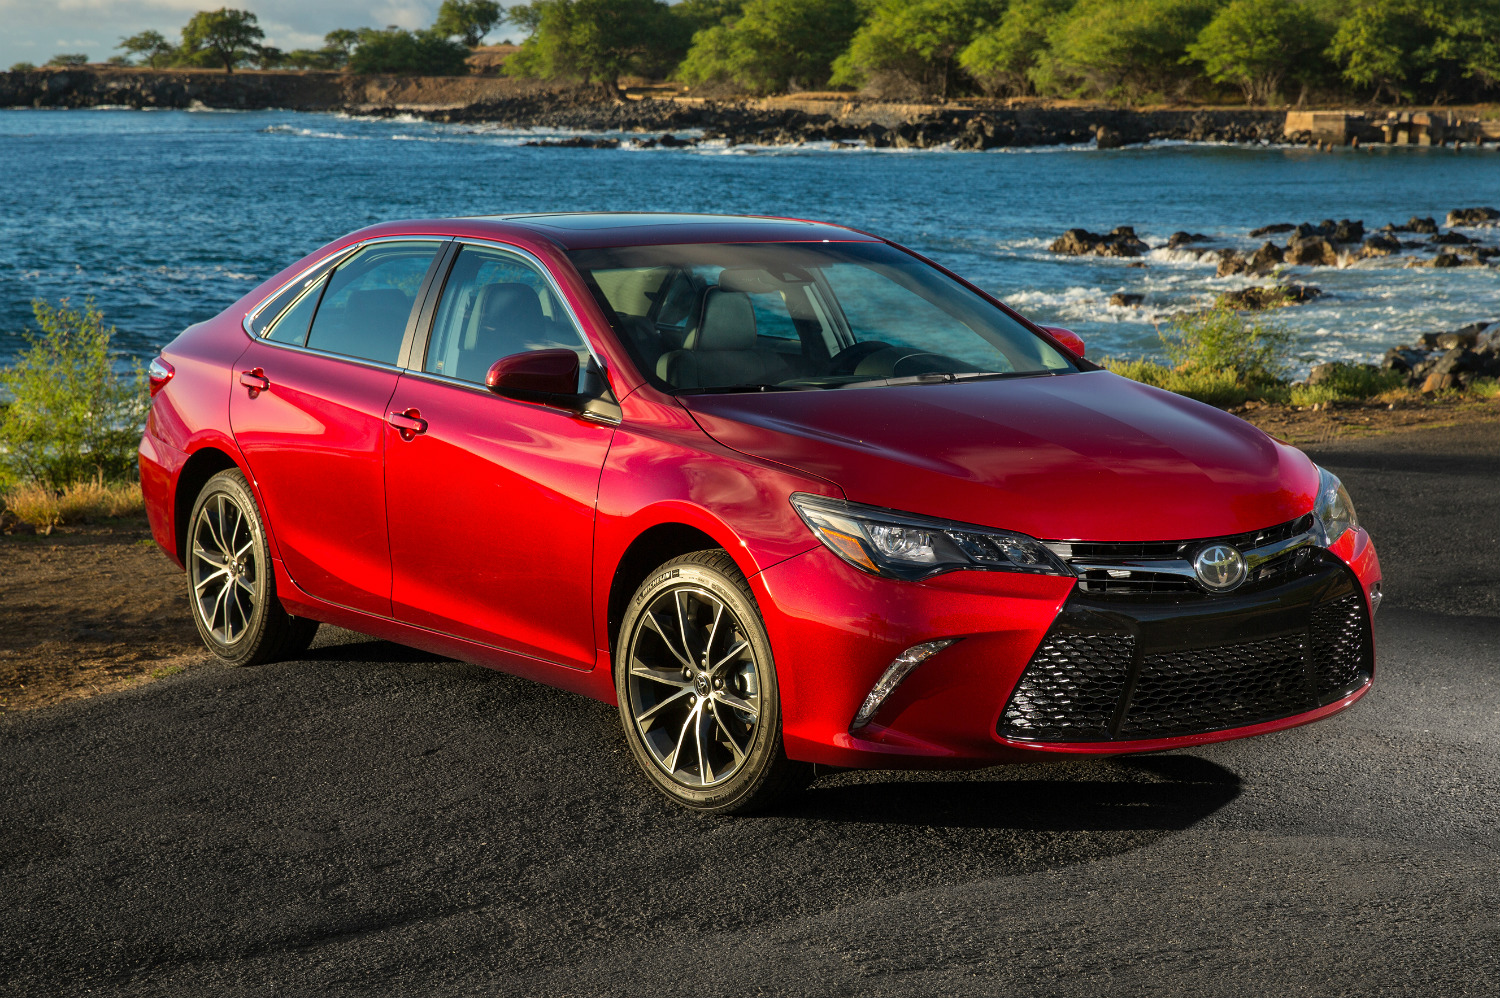 2016 Toyota Camry Xse >> The 2017 Toyota Camry gains more standard features but no price increase